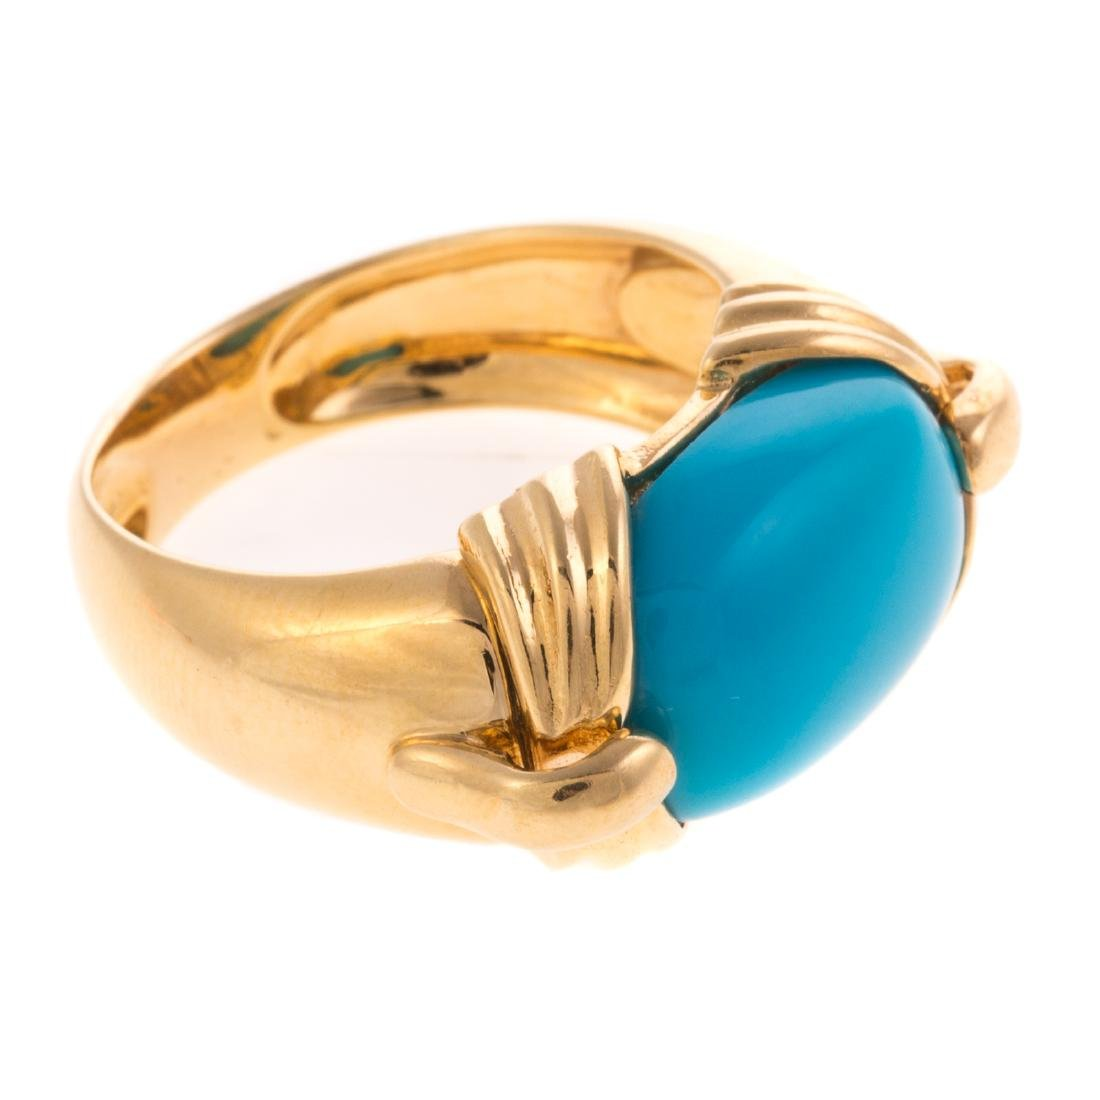 A Lady's Sleeping Beauty Turquoise Ring in 18K - 2